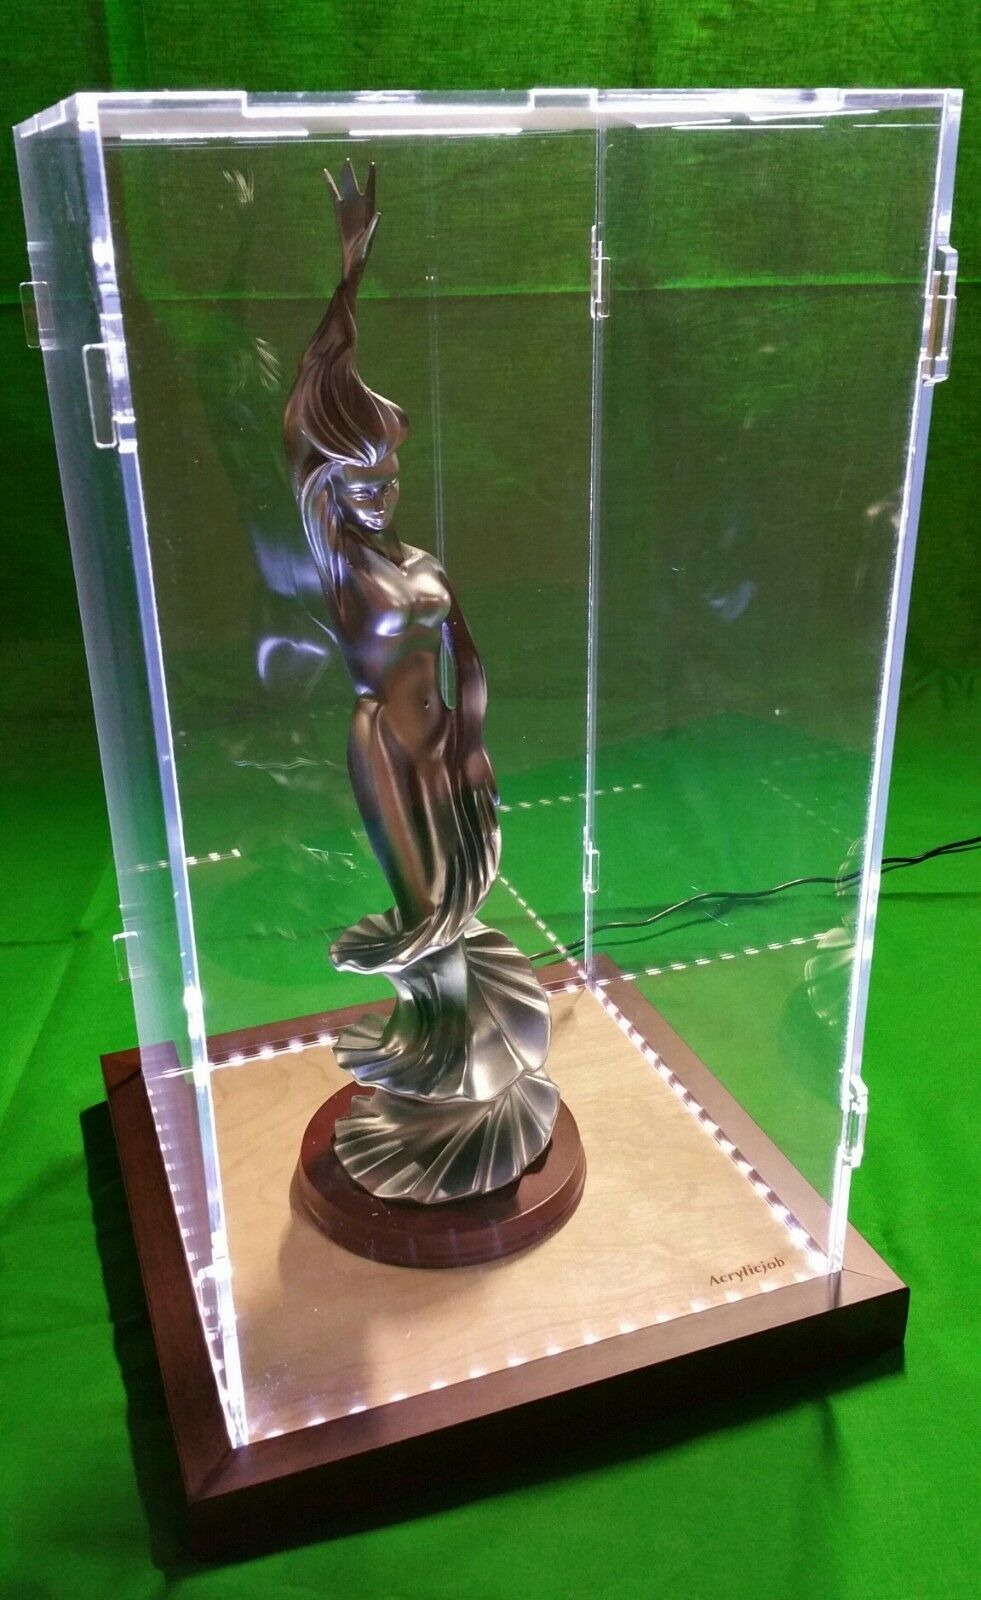 14 x 14 x 28 Display Case for Hot Toy Figures 1/6 Scale, Statue, Doll, LED Light